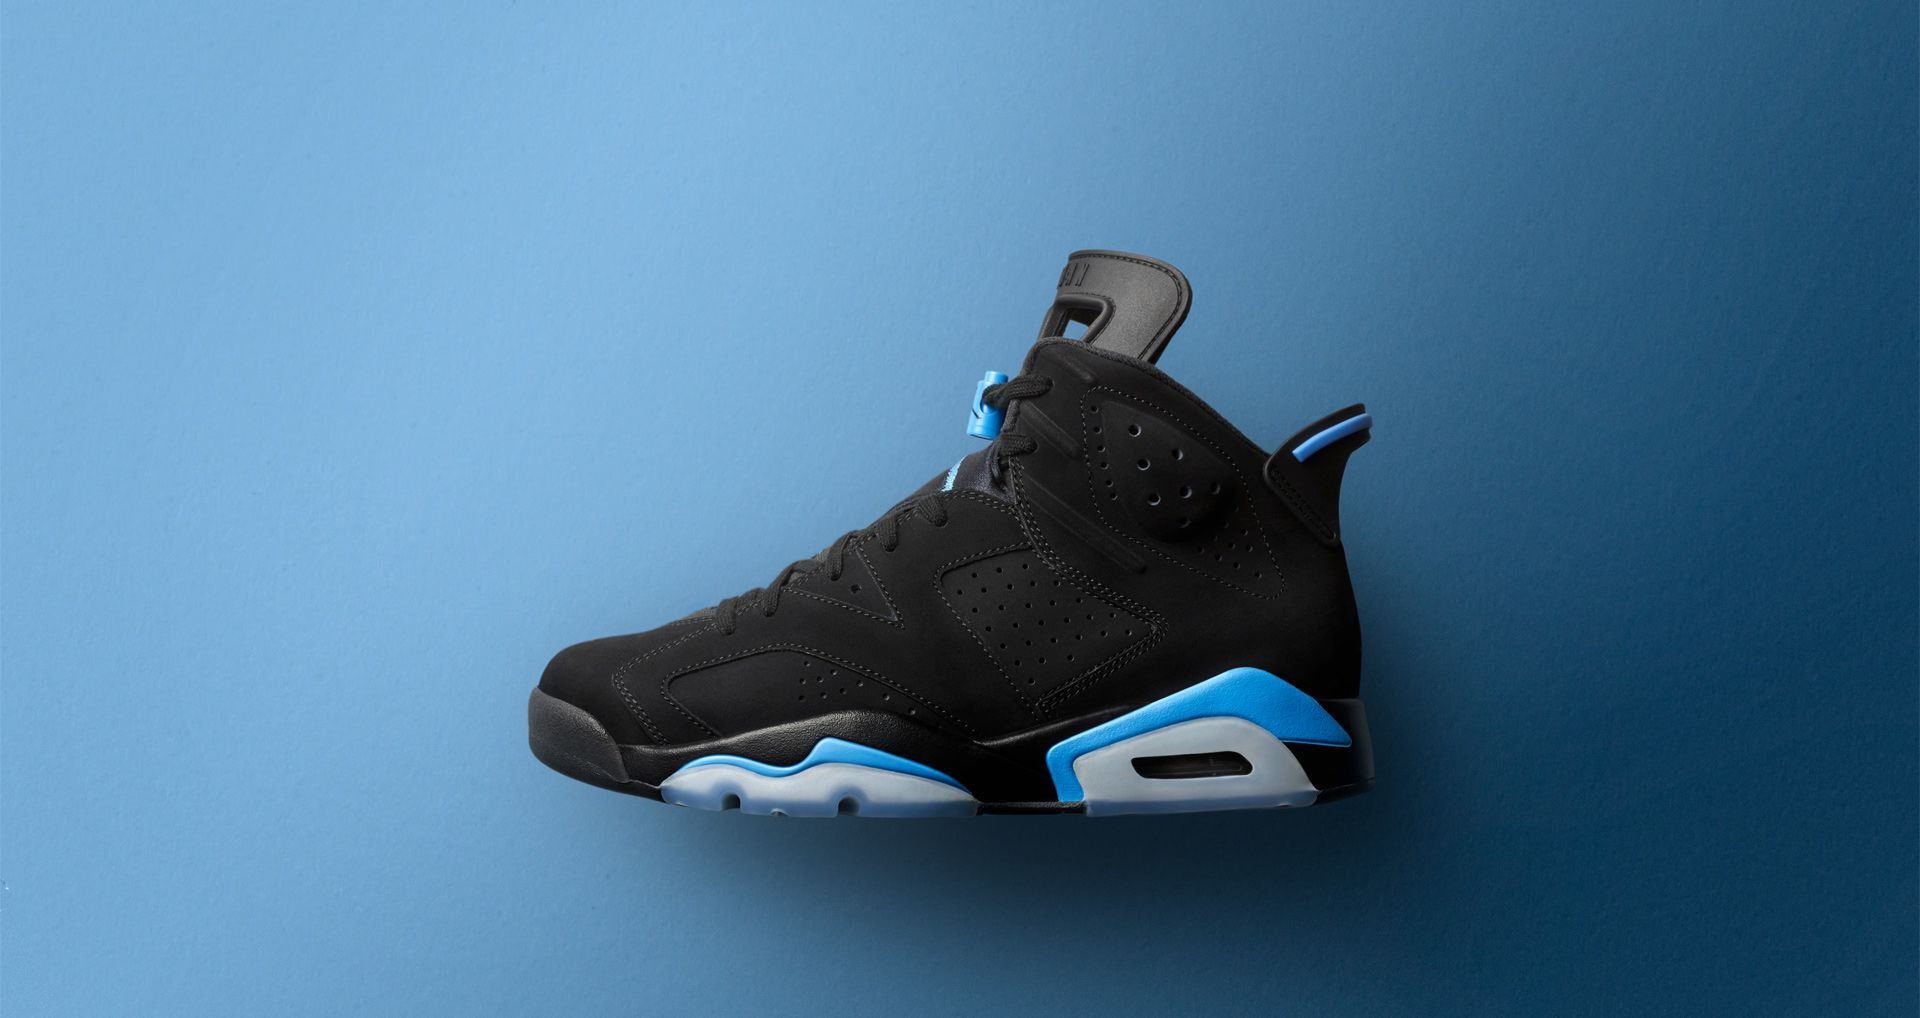 8650b02b3 Air Jordan 6  Black   University Blue  Release Date. Nike⁠+ SNKRS